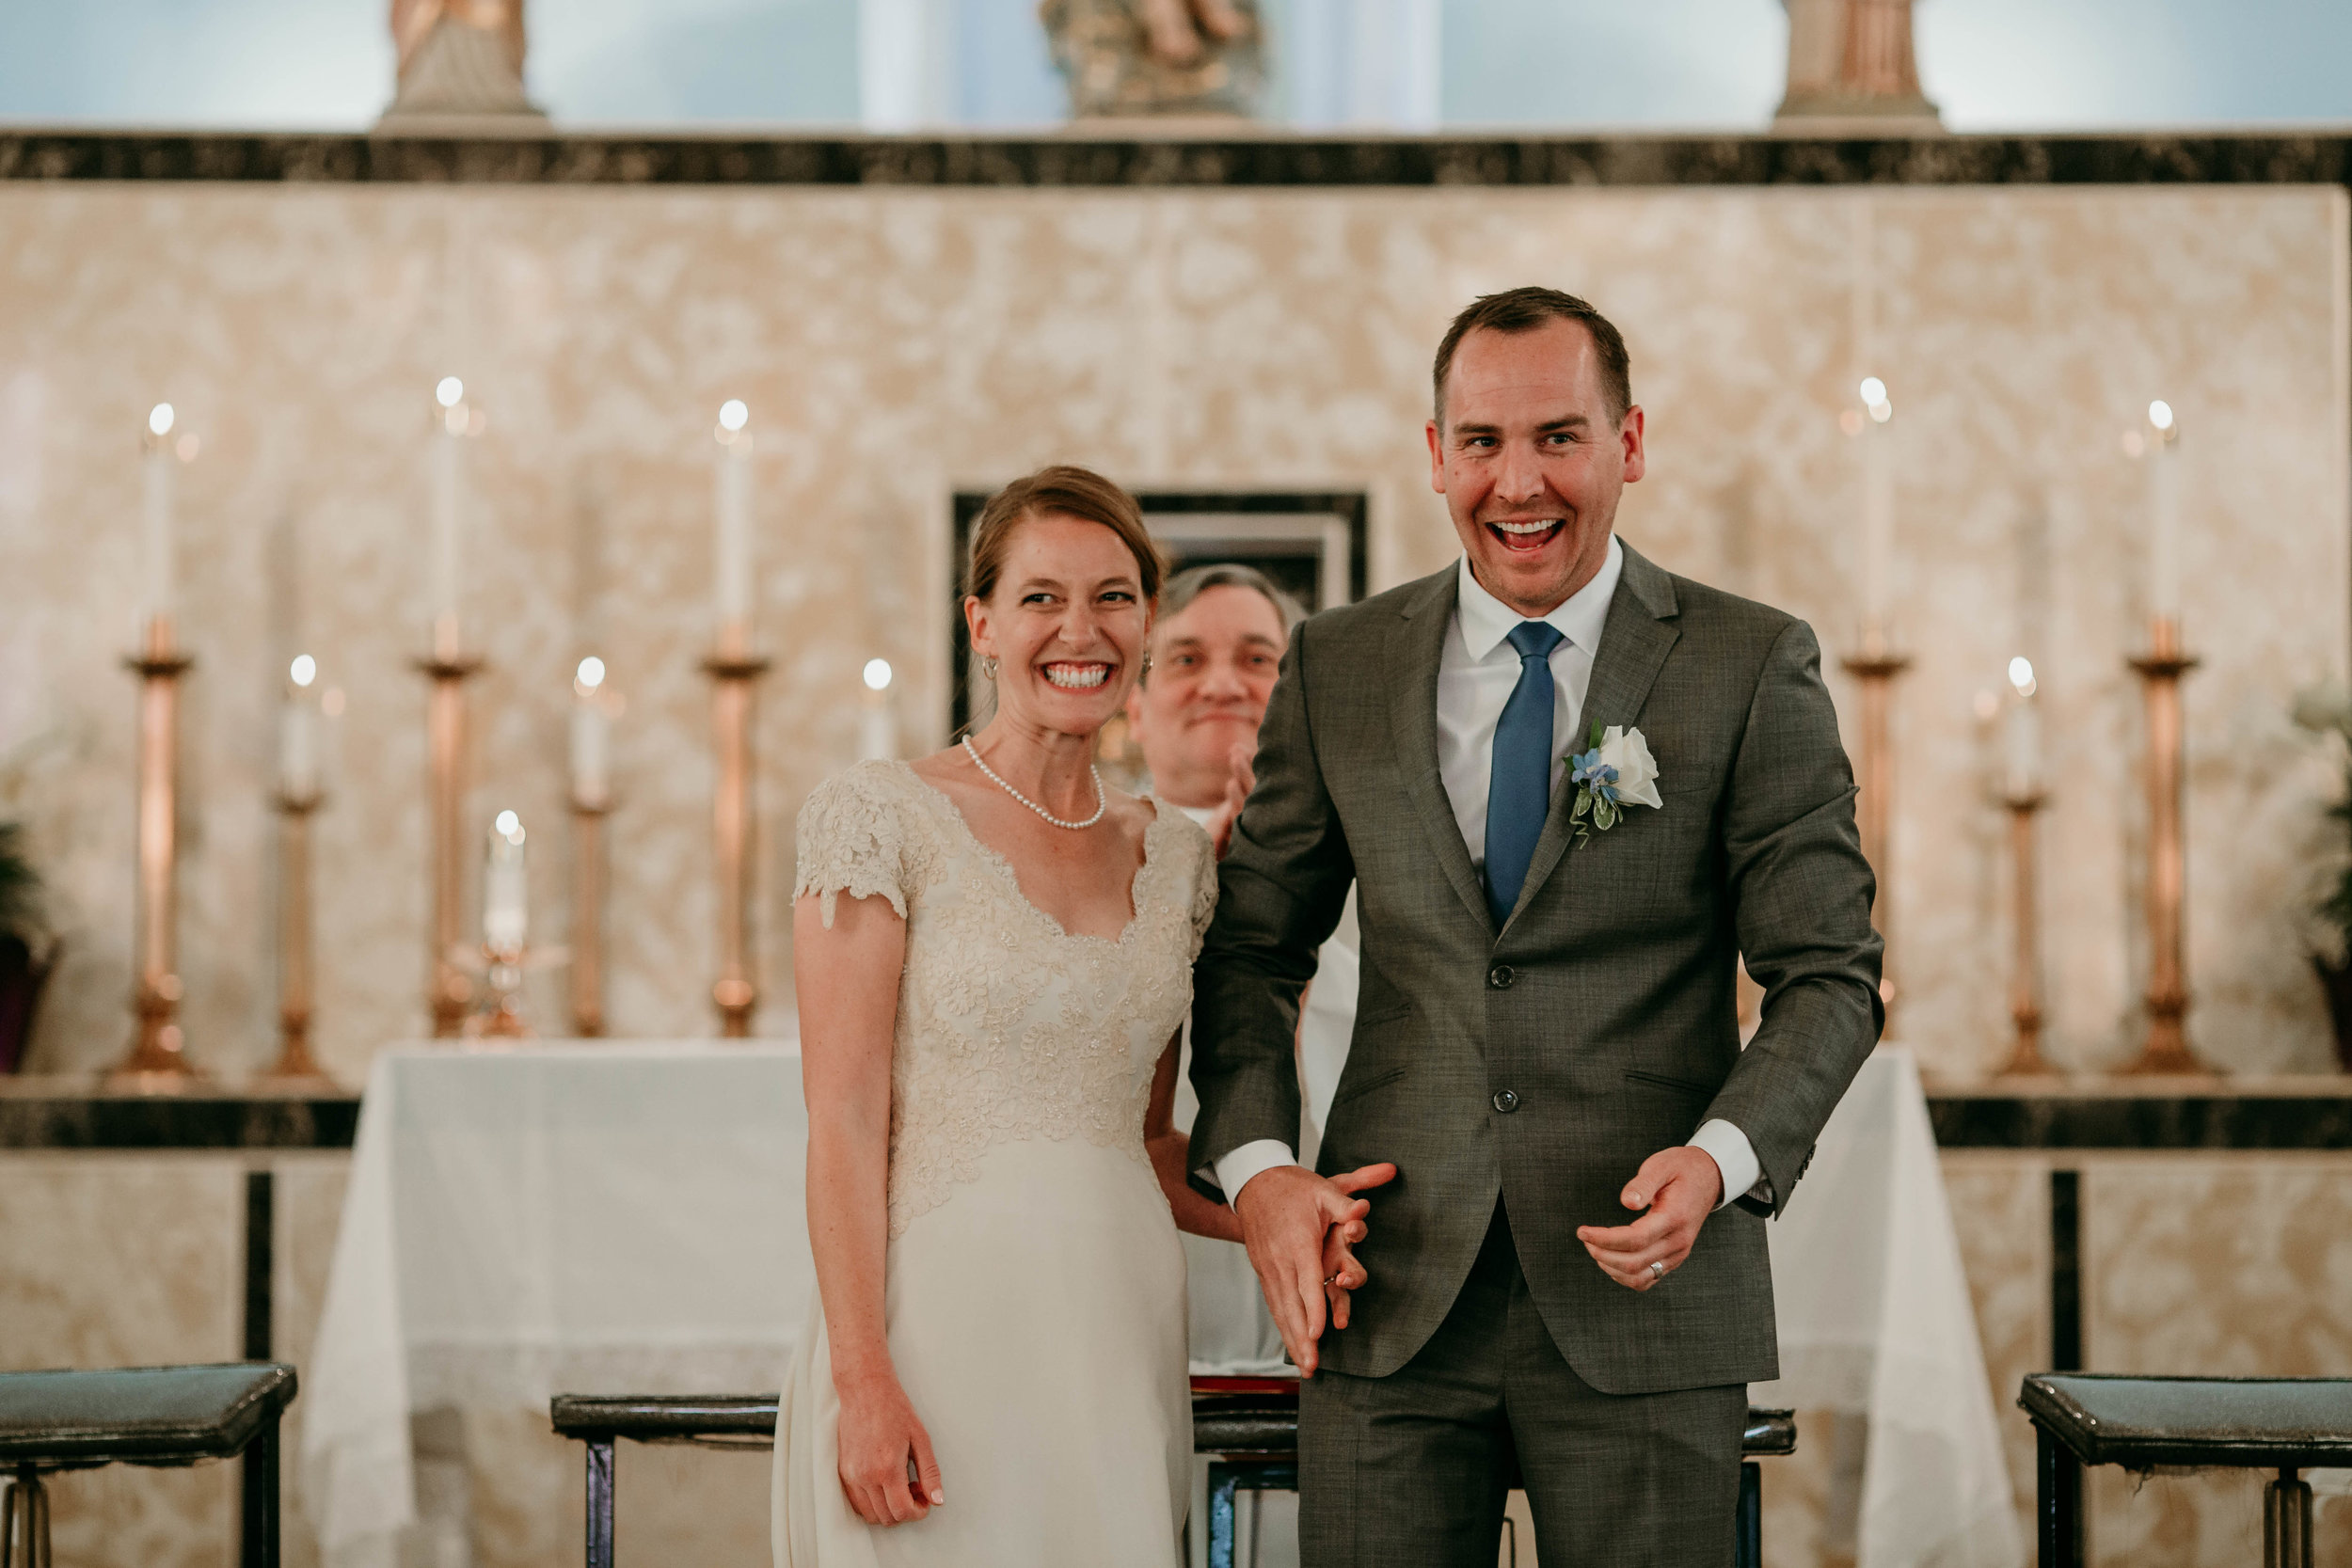 Bert & Lauren's North Kansas City Spring Wedding | Hannahill Photography | Raleigh Durham Photographer | North Carolina Wedding Photography | Family Photographer | Wedding photographer | bride and groom announced as husband and wife at catholic ceremony